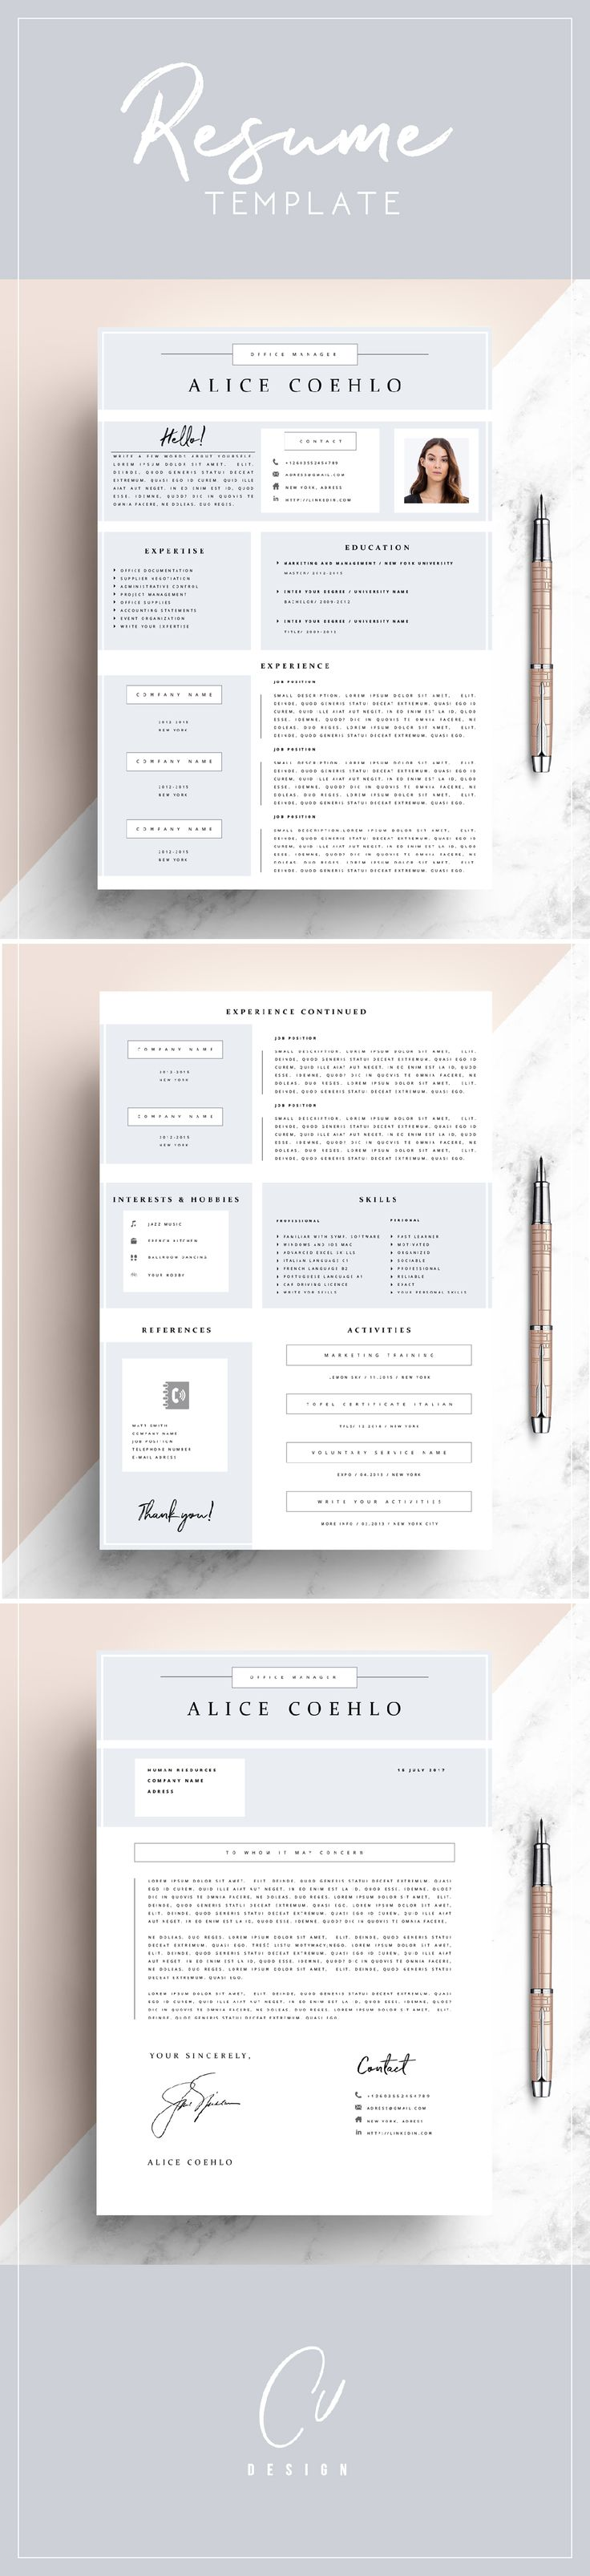 Check out this amazing MS Word editable resume template! <3